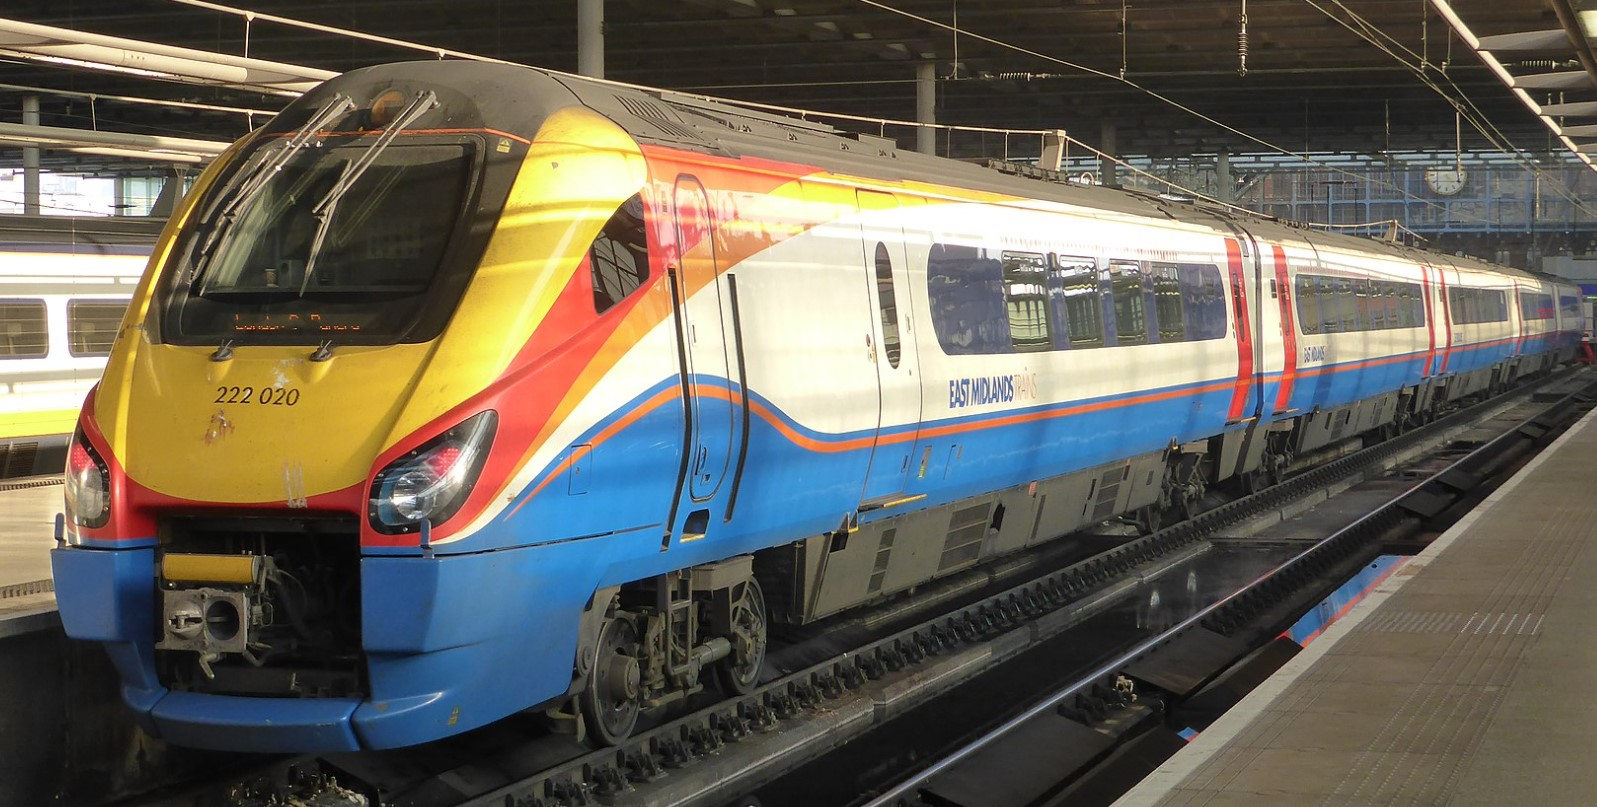 222020 at London St Pancras International in March 2014. ©Train Photos